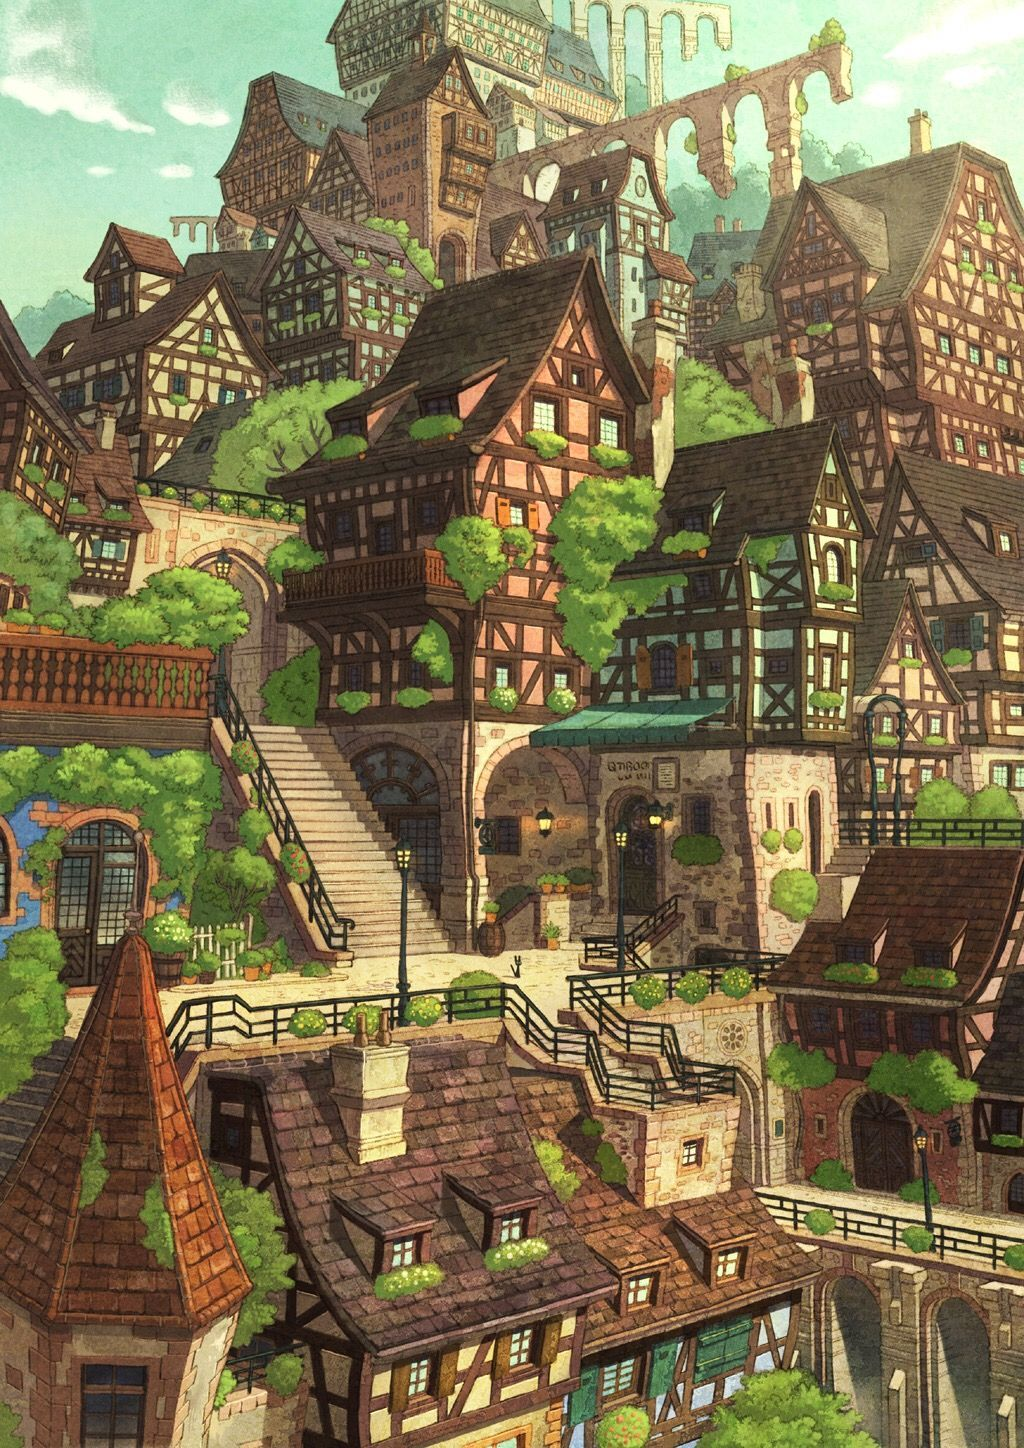 Anime Manga Background Old Victorian Medieval Village Arte Ambiental Arte Conceptual Fantasy Town I 2021 Illustrasjon Maleri Inspirasjon Artister